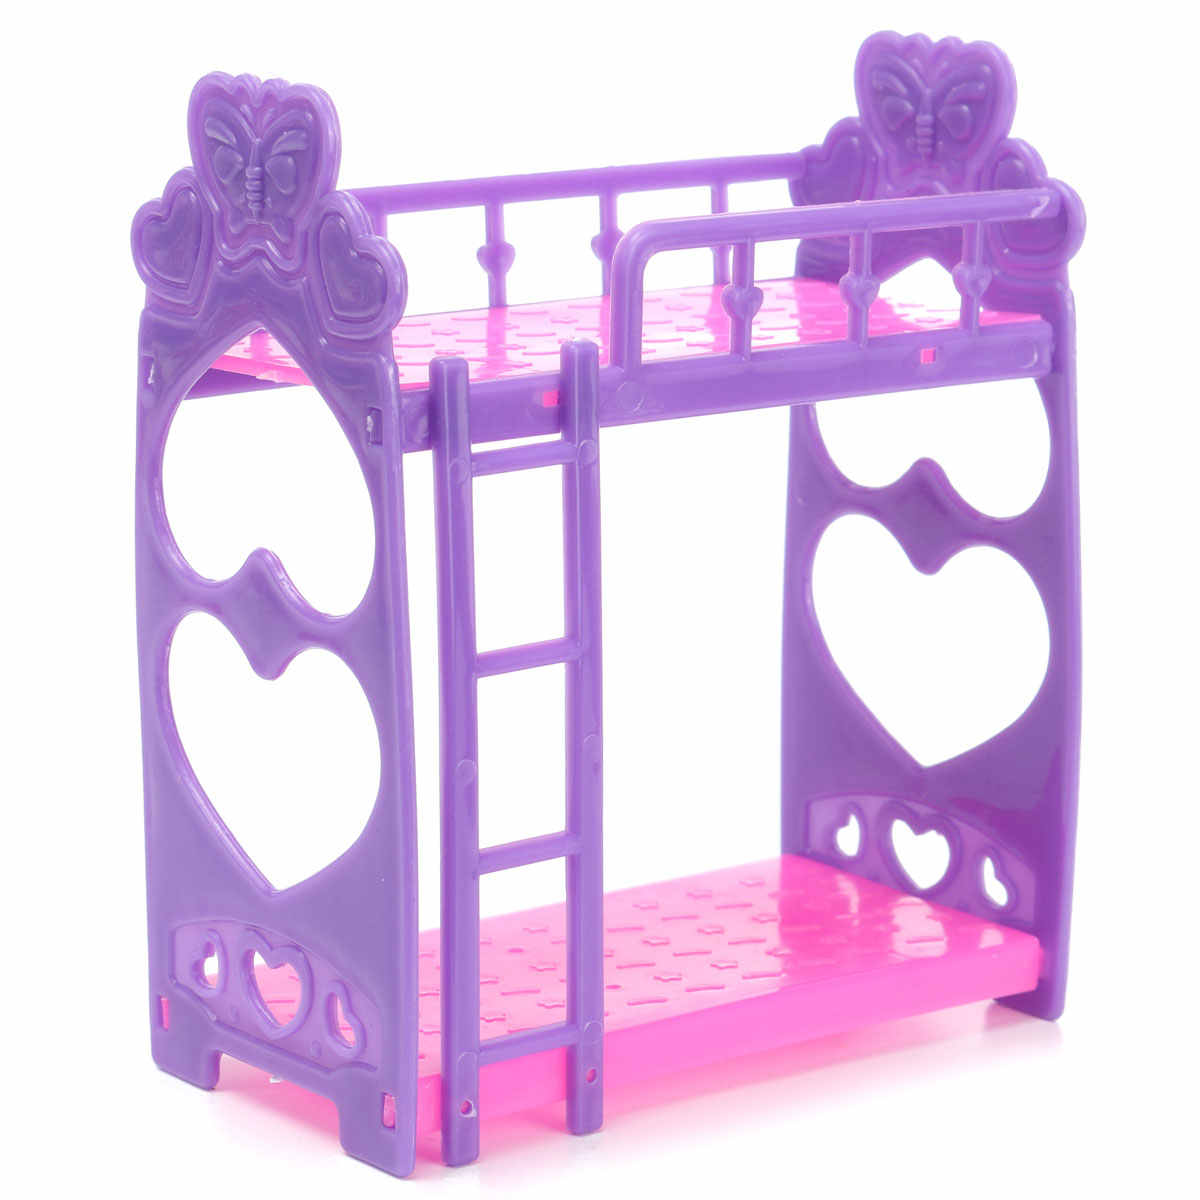 Plastic Miniature Double Bed Toy Furniture For Dollhouse Mini Doll Dream Closet Playing House Toys Decoration Toys Gifts